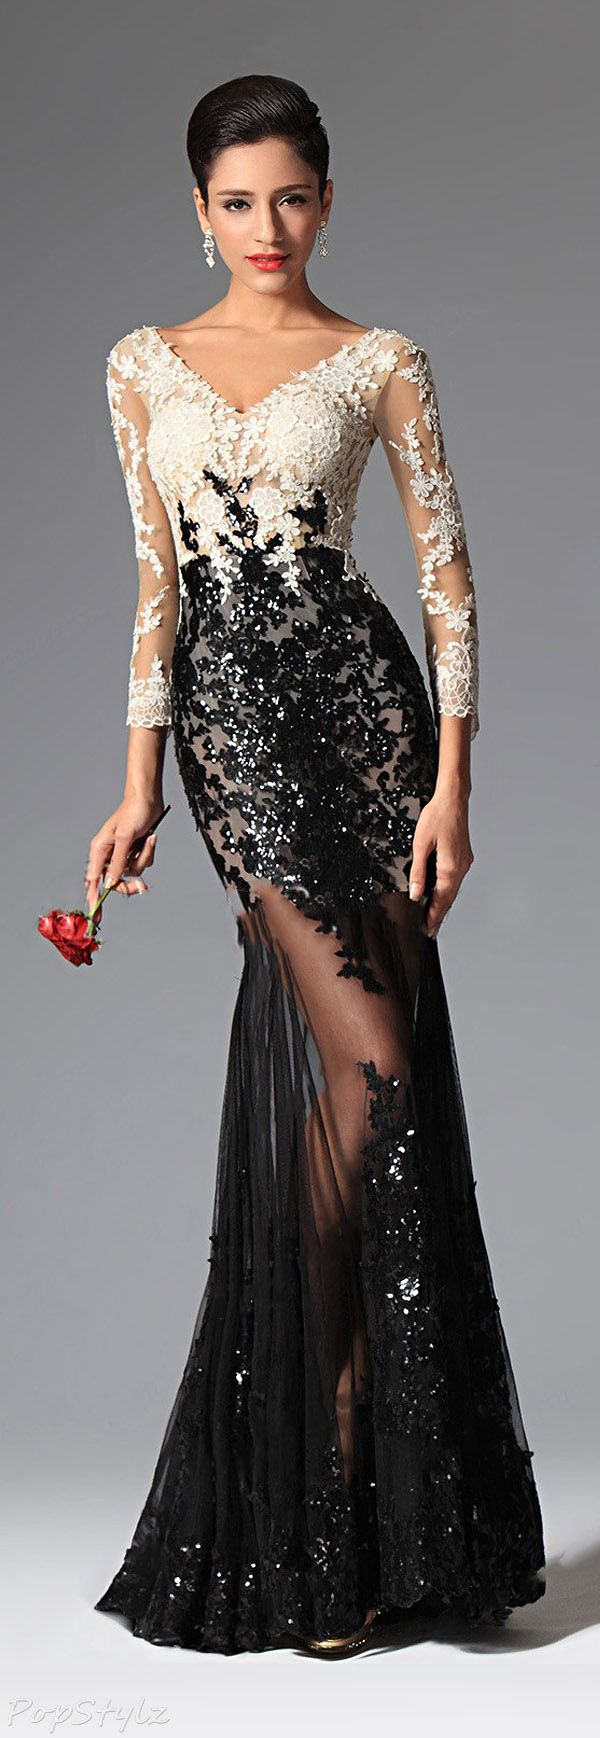 17 Best ideas about Long Sleeve Evening Gowns on Pinterest ...